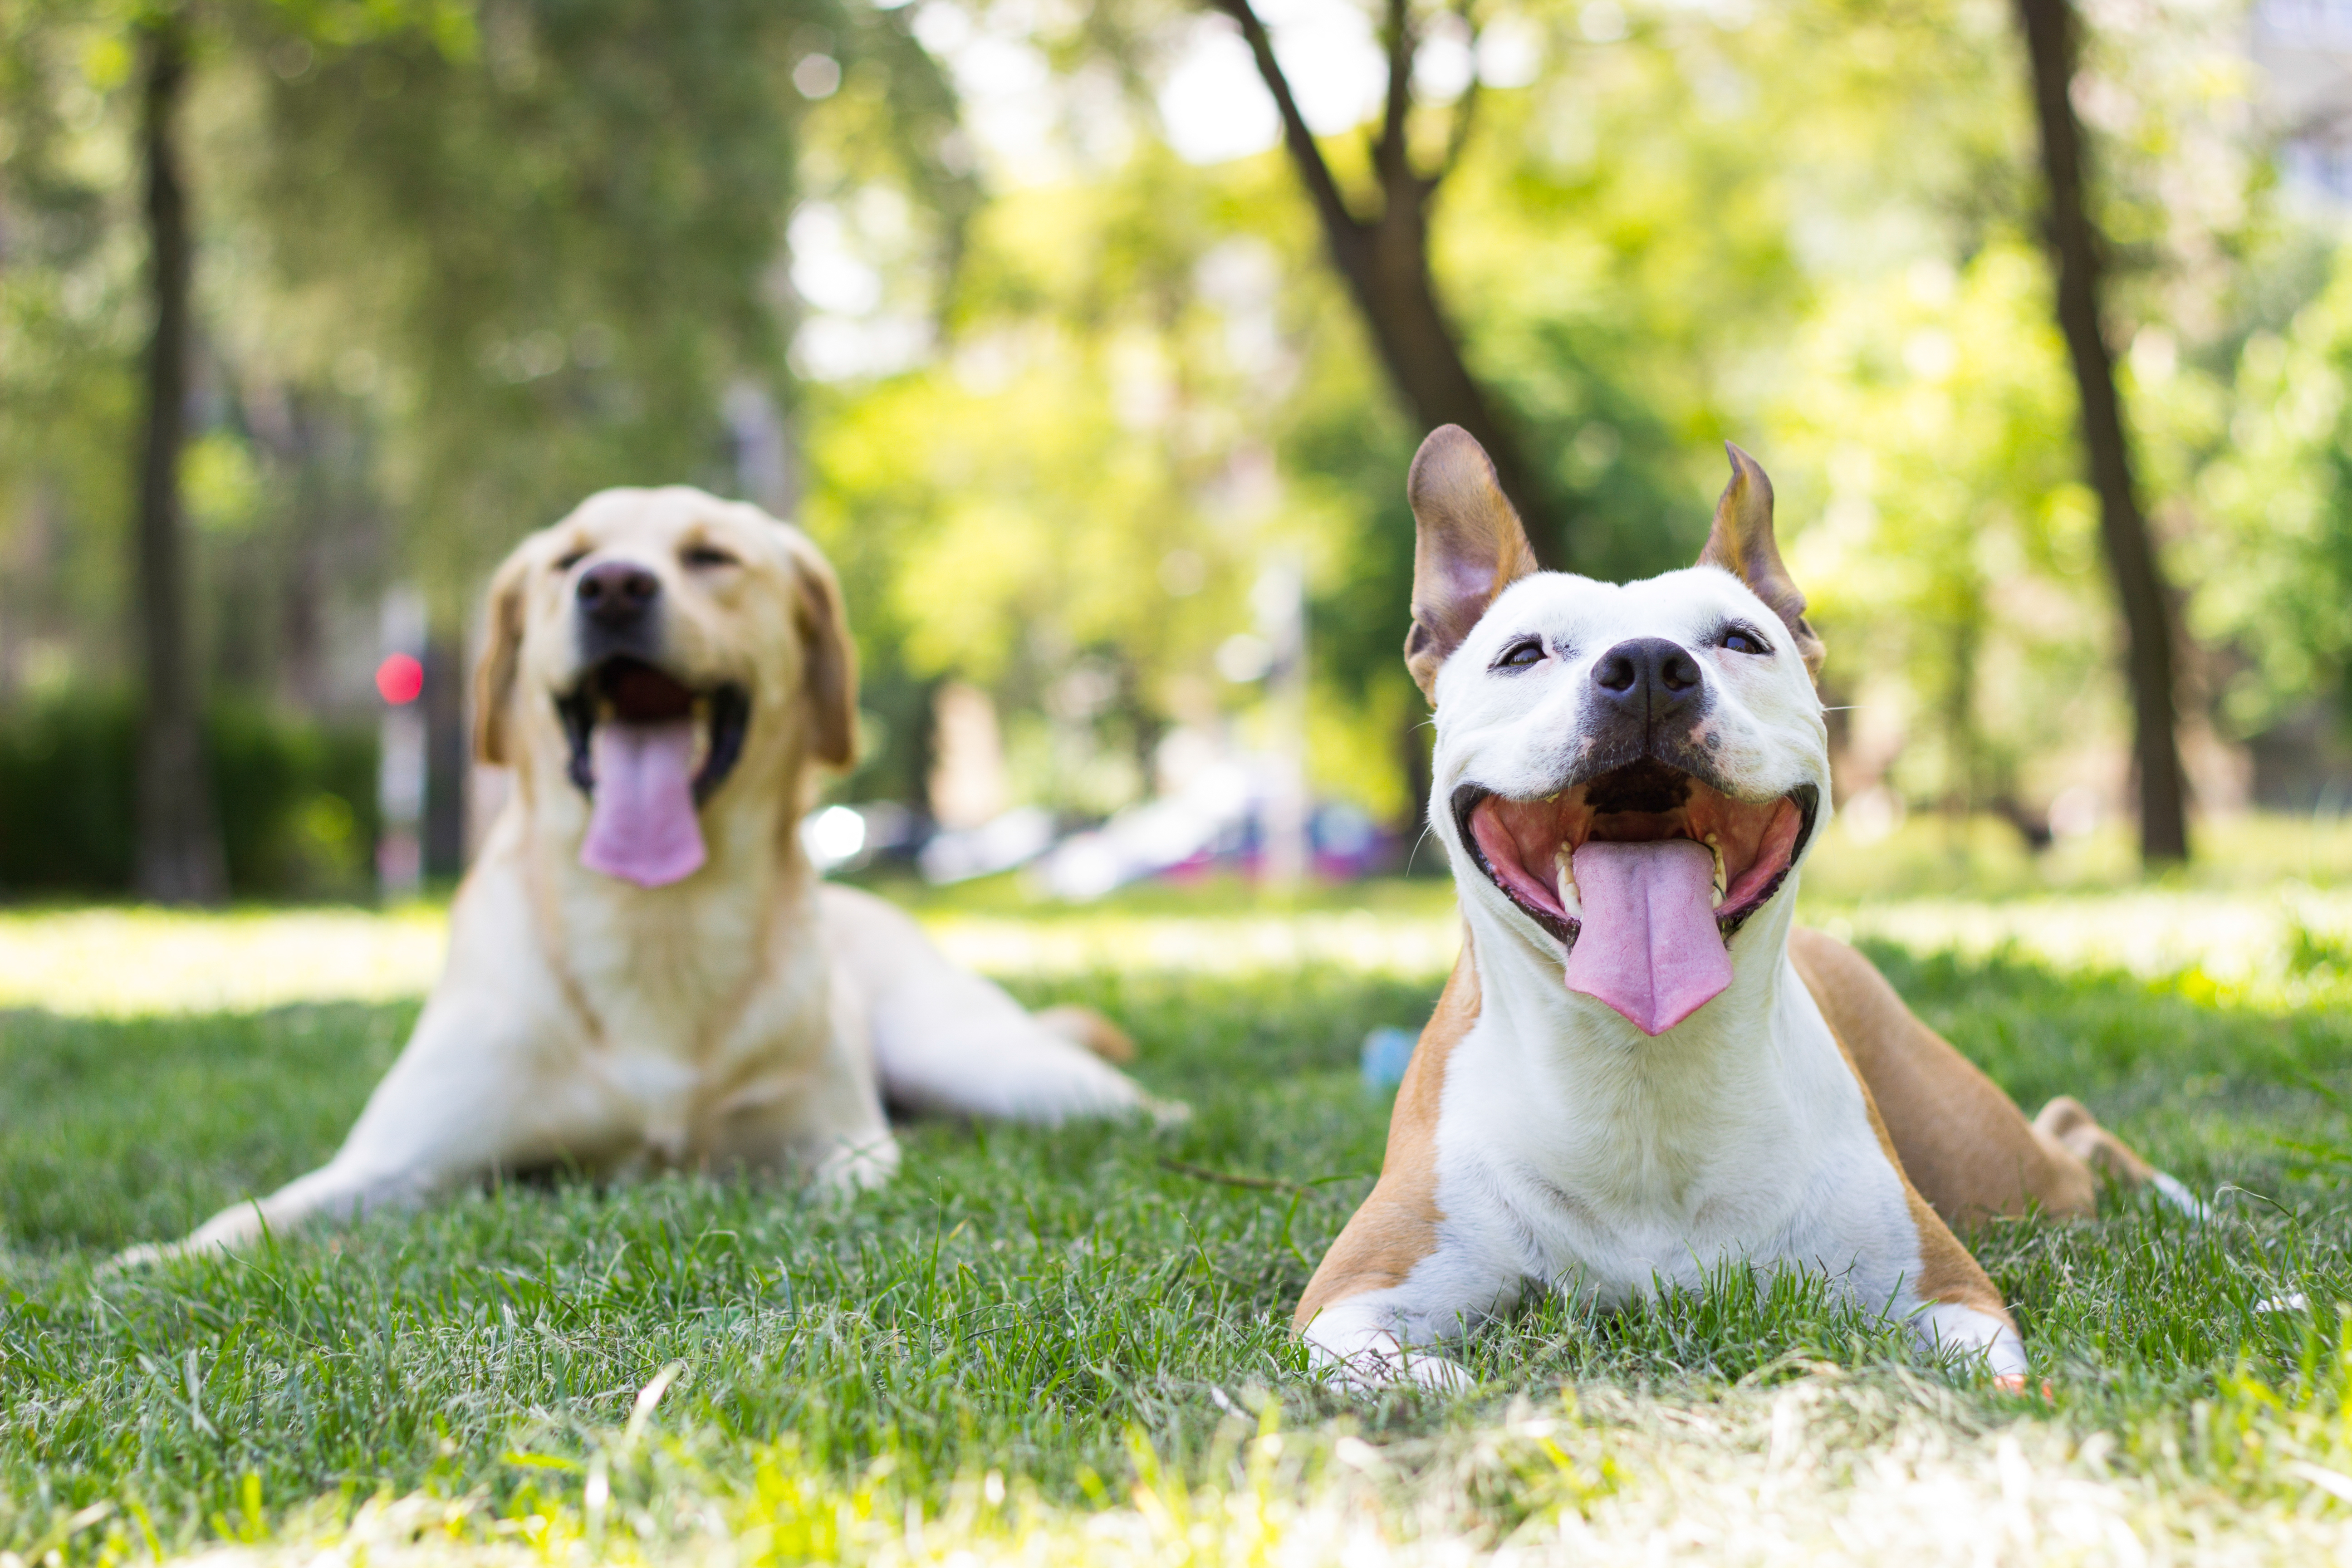 Two light-colored dogs panting on the grass on a sunny day in a park.